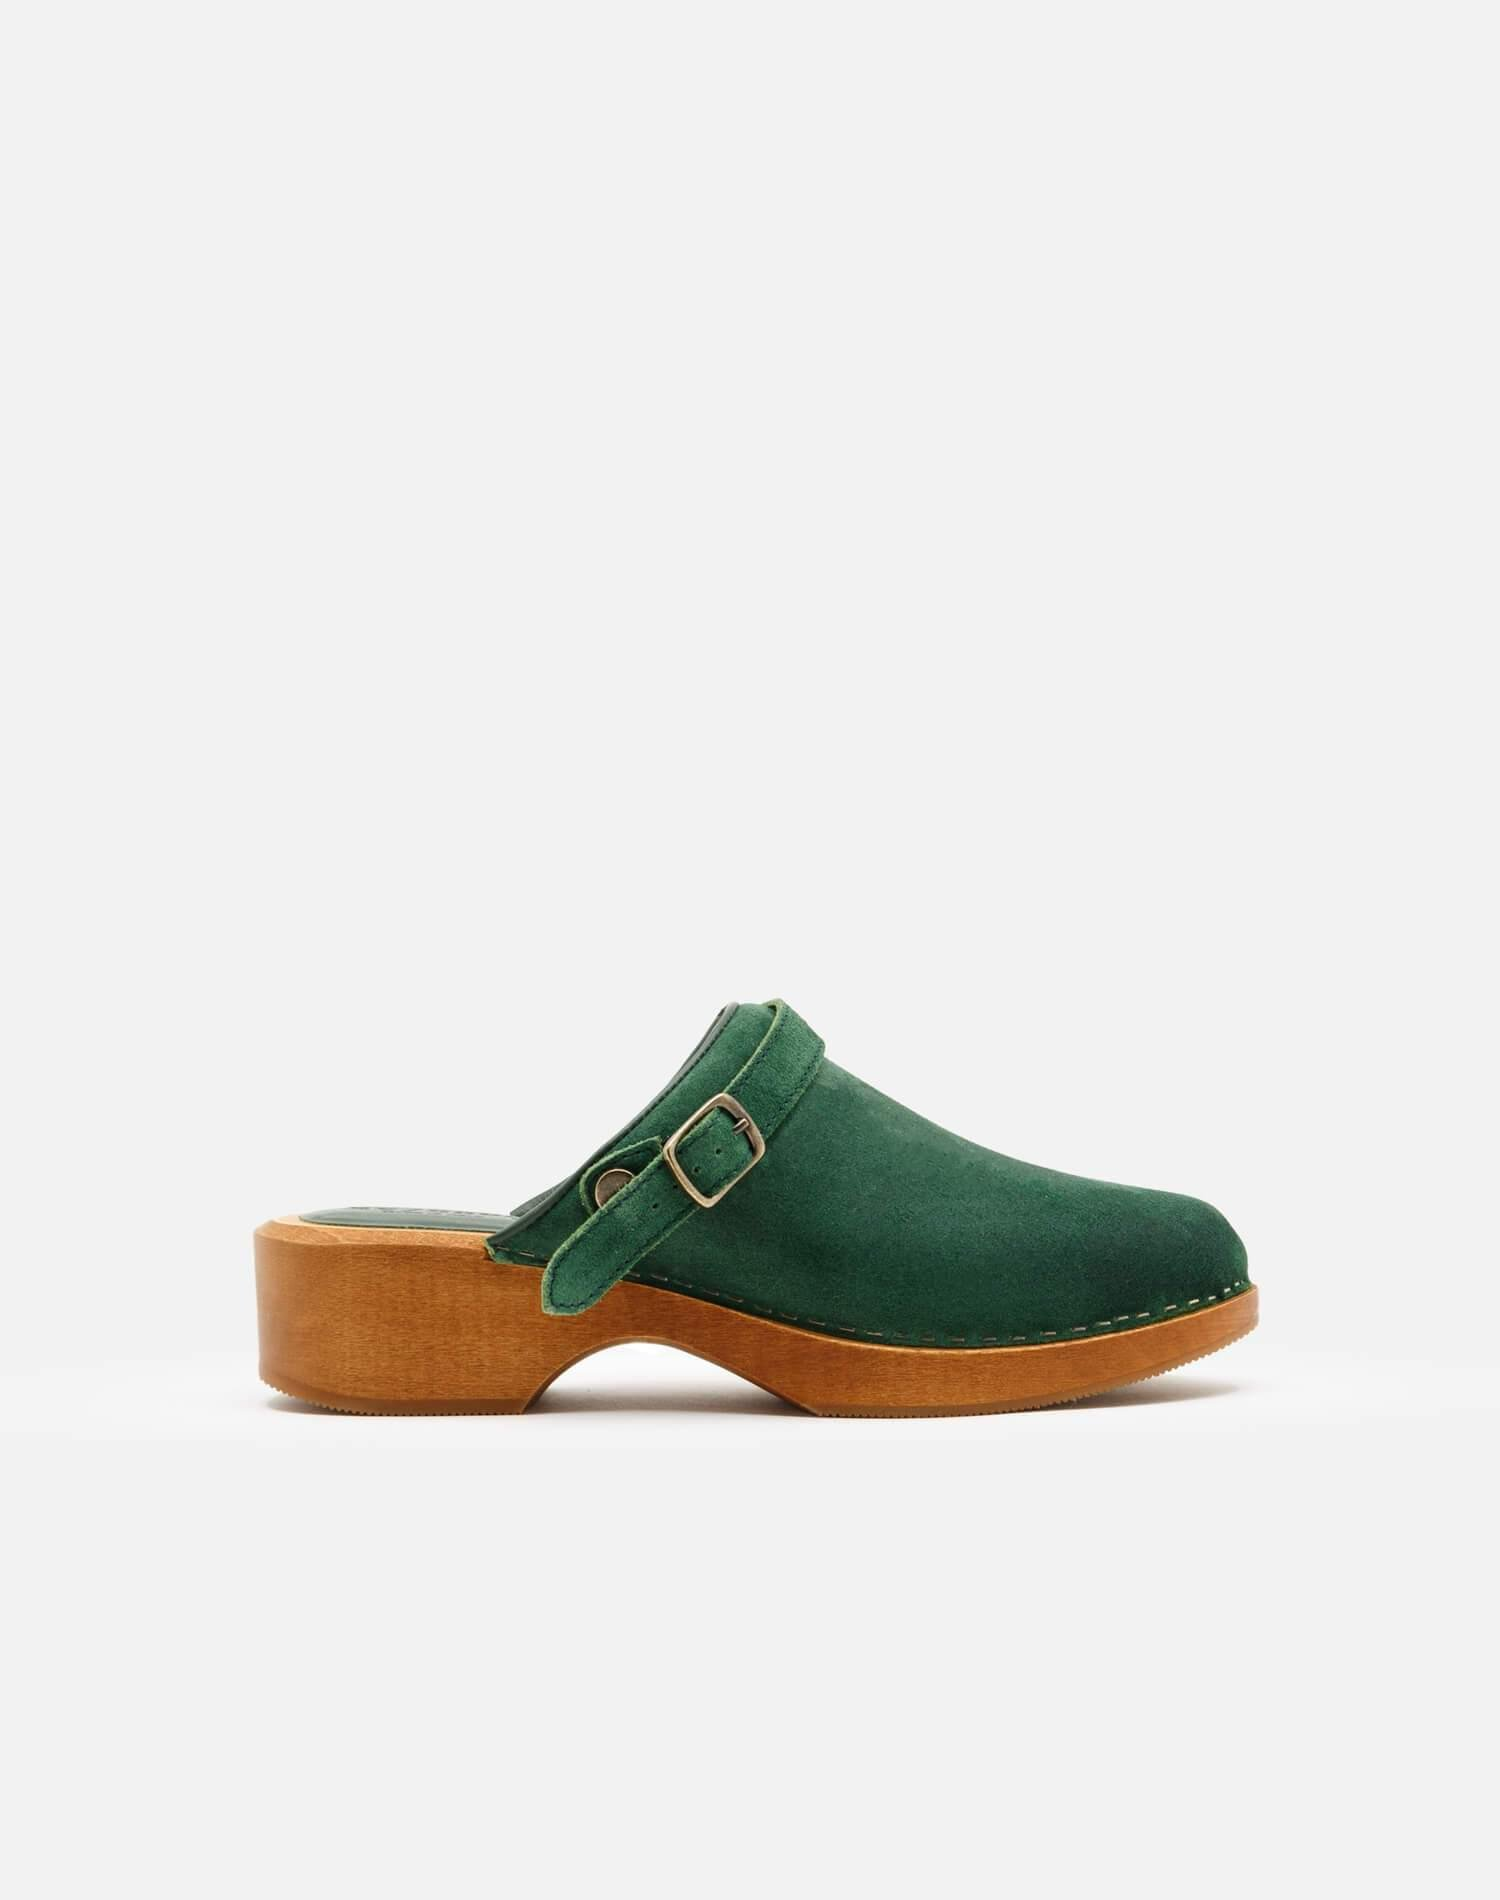 70s Classic Clog - Green Suede